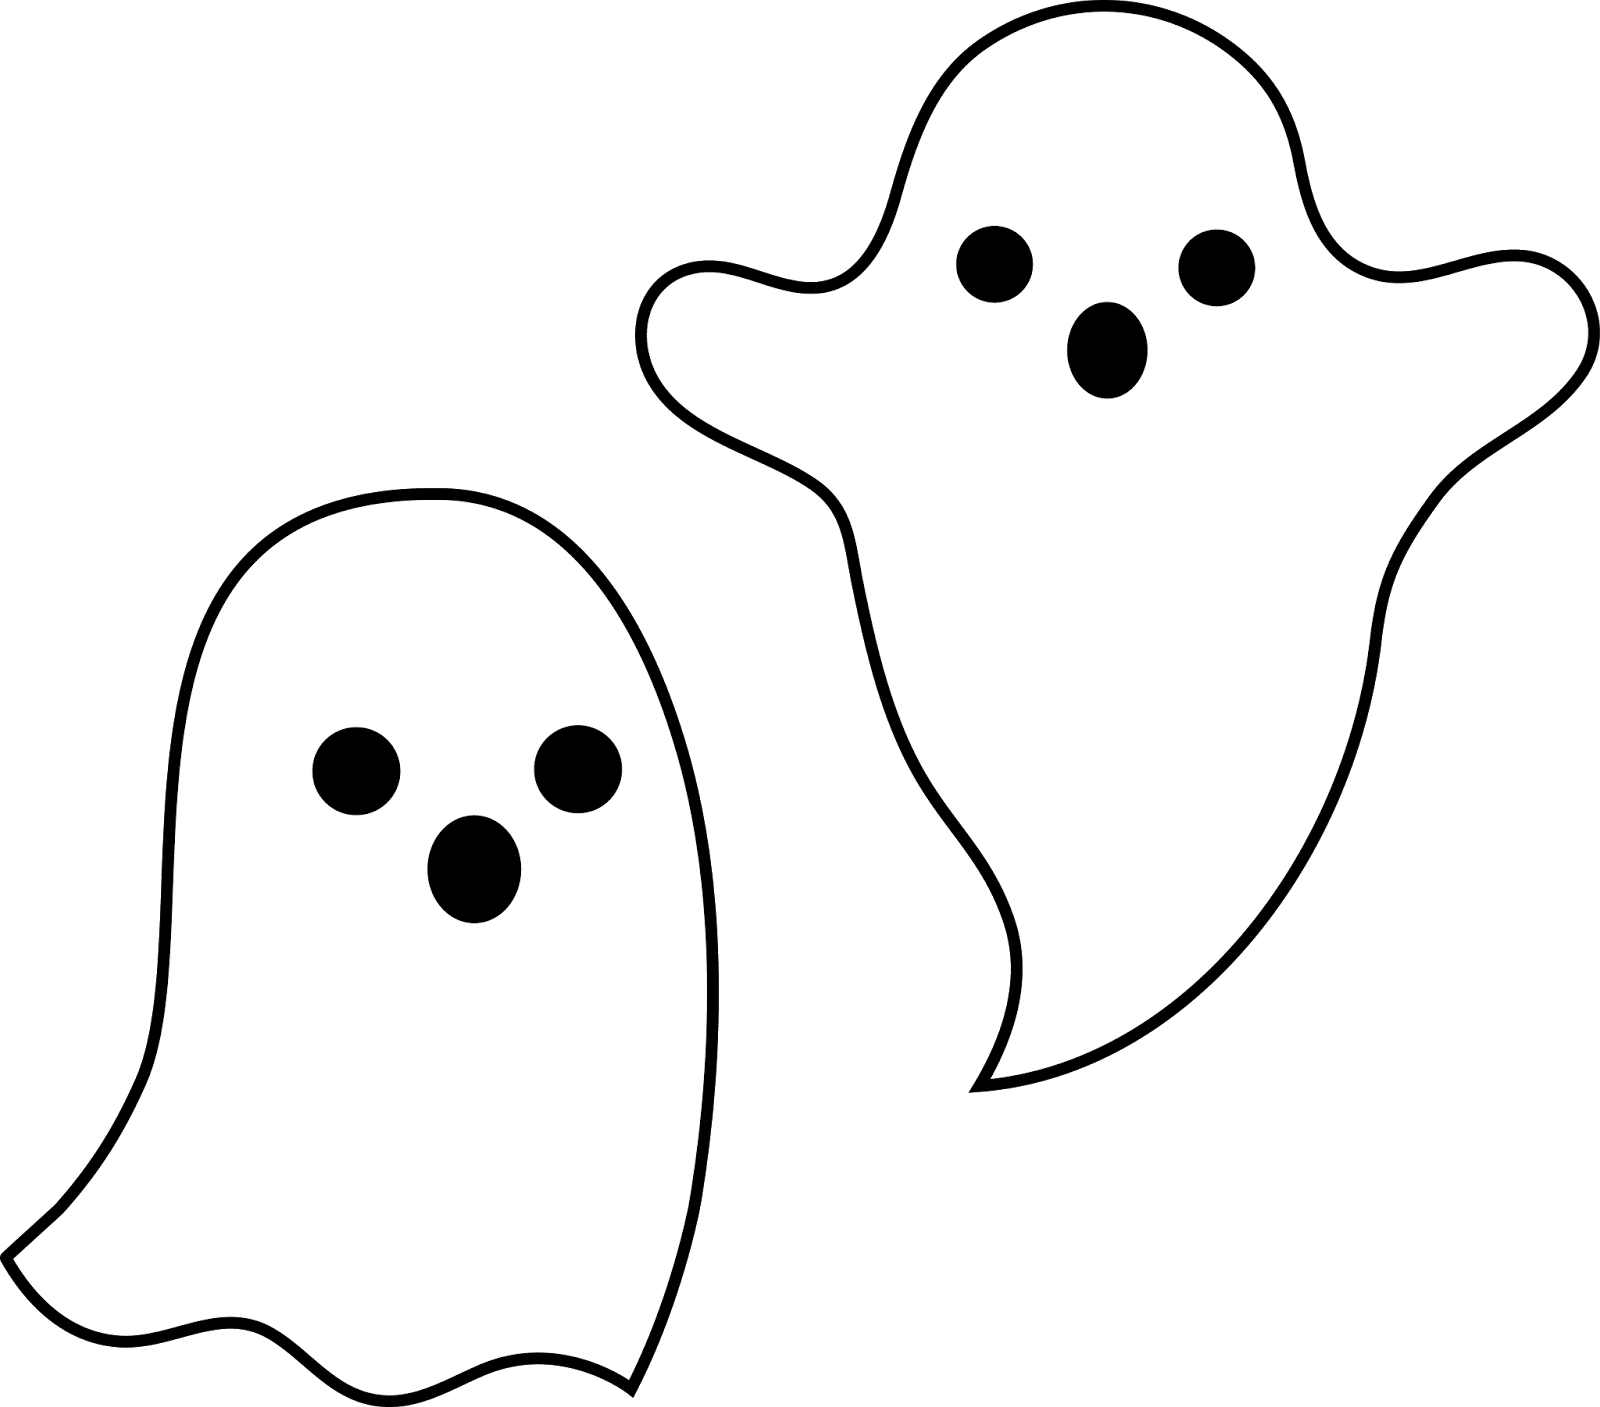 ghost silhouette clipart at getdrawings com free for personal use rh getdrawings com  halloween ghost clipart free